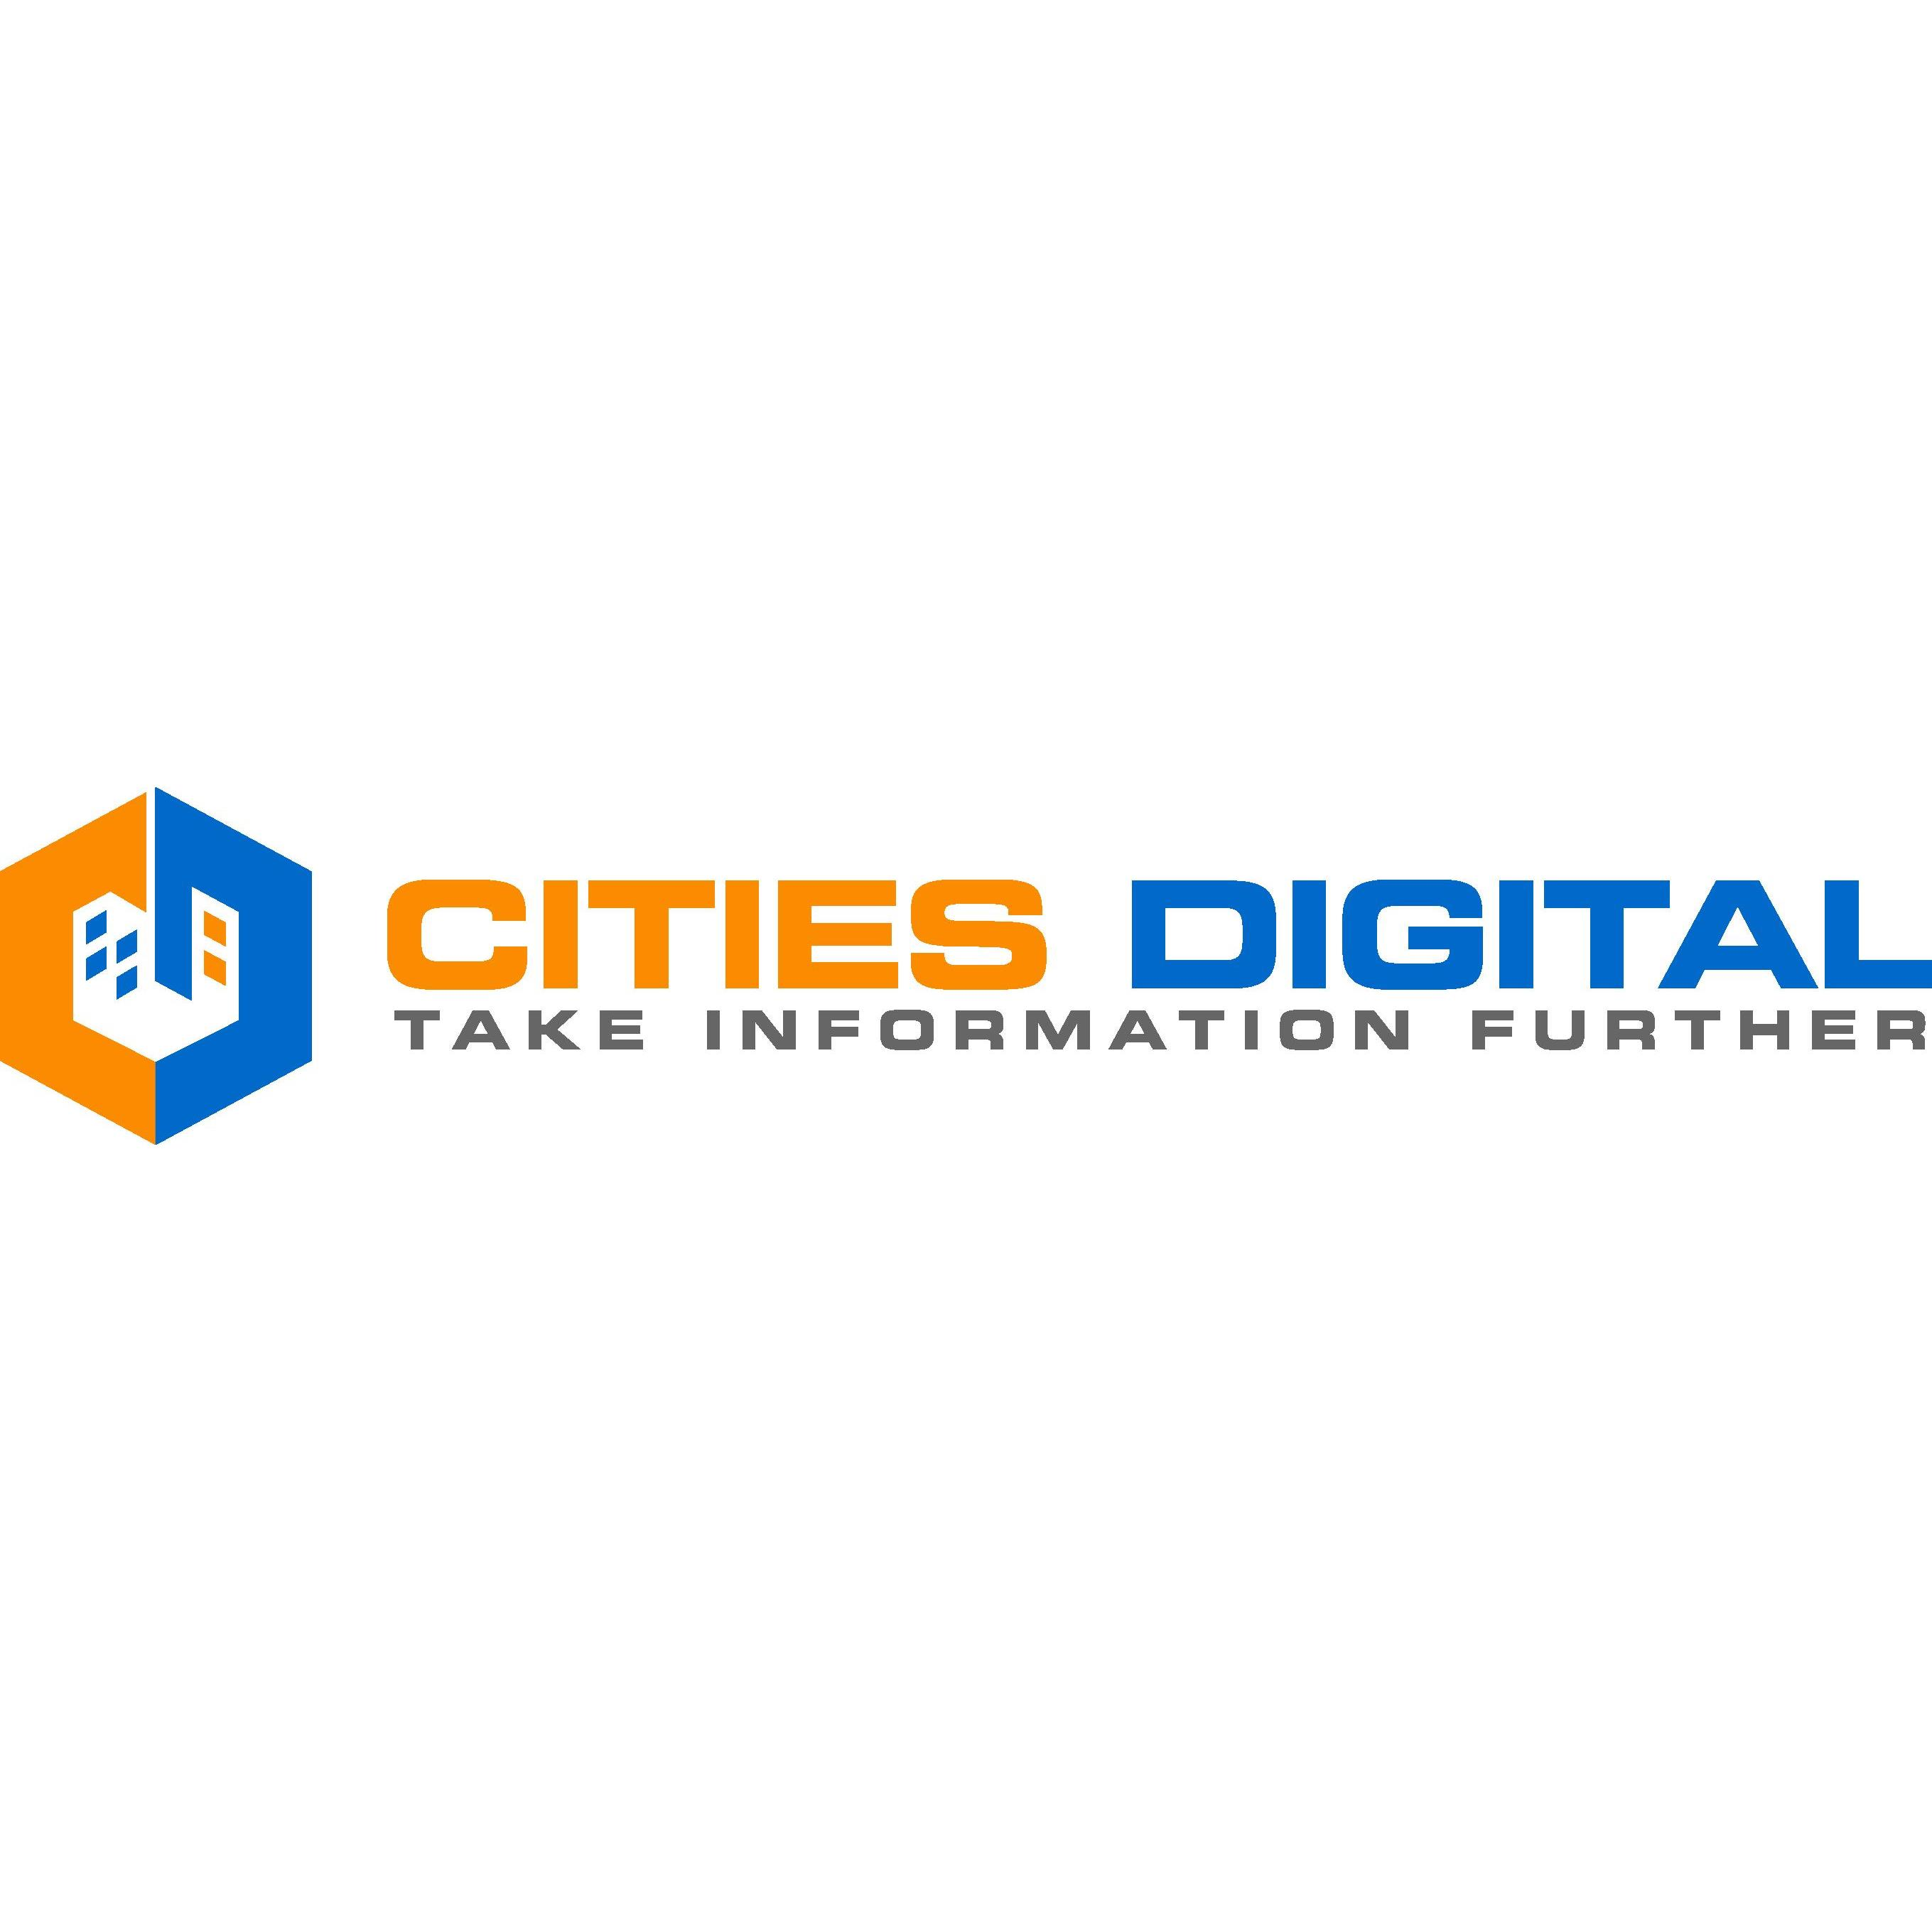 Cities Digital + Logo